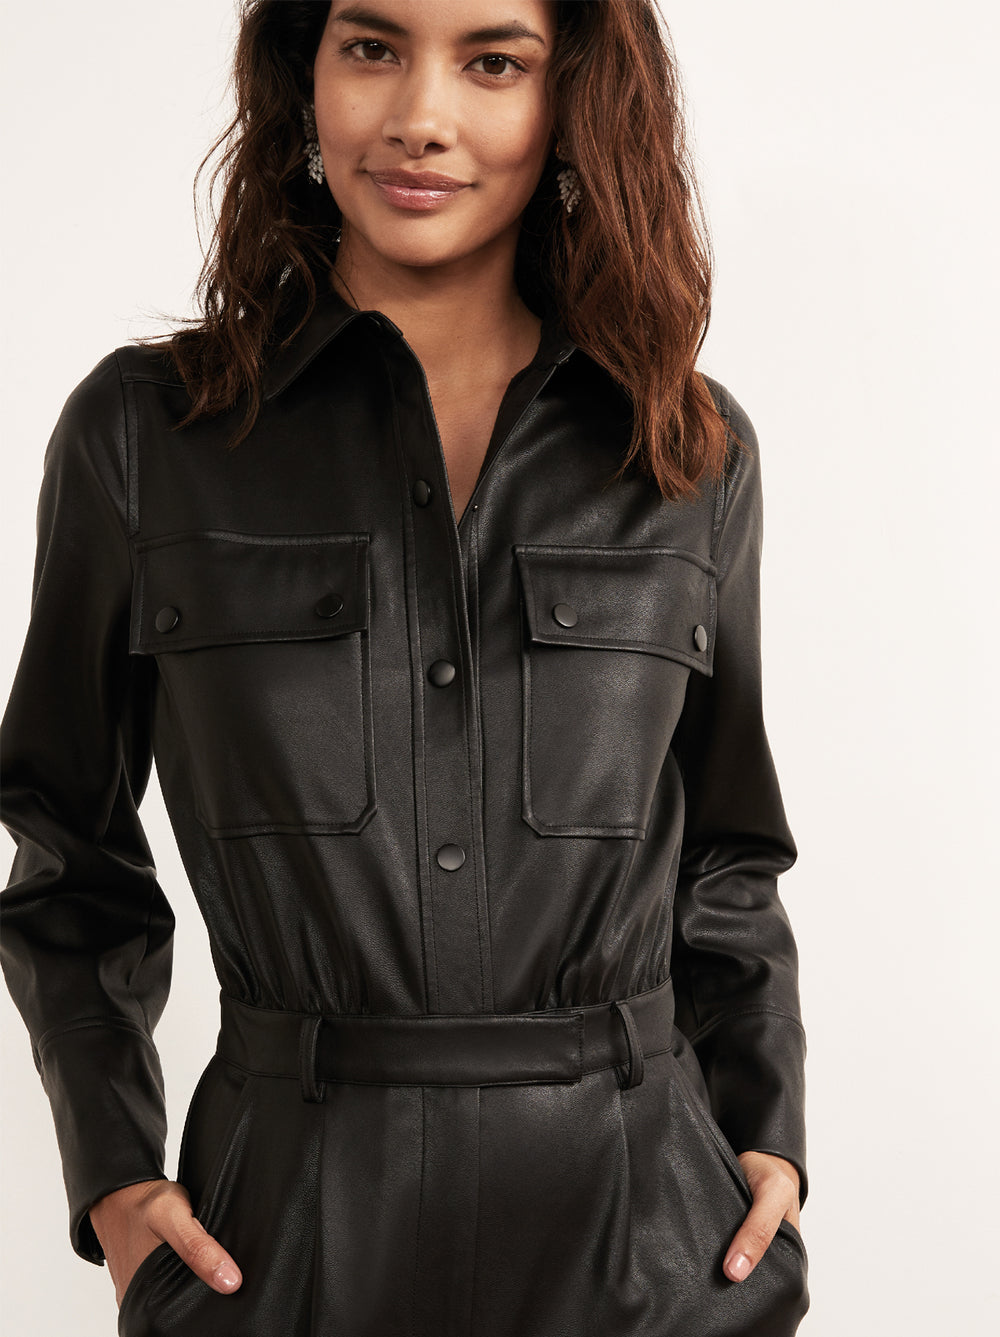 Fee Black Vegan Leather Jumpsuit